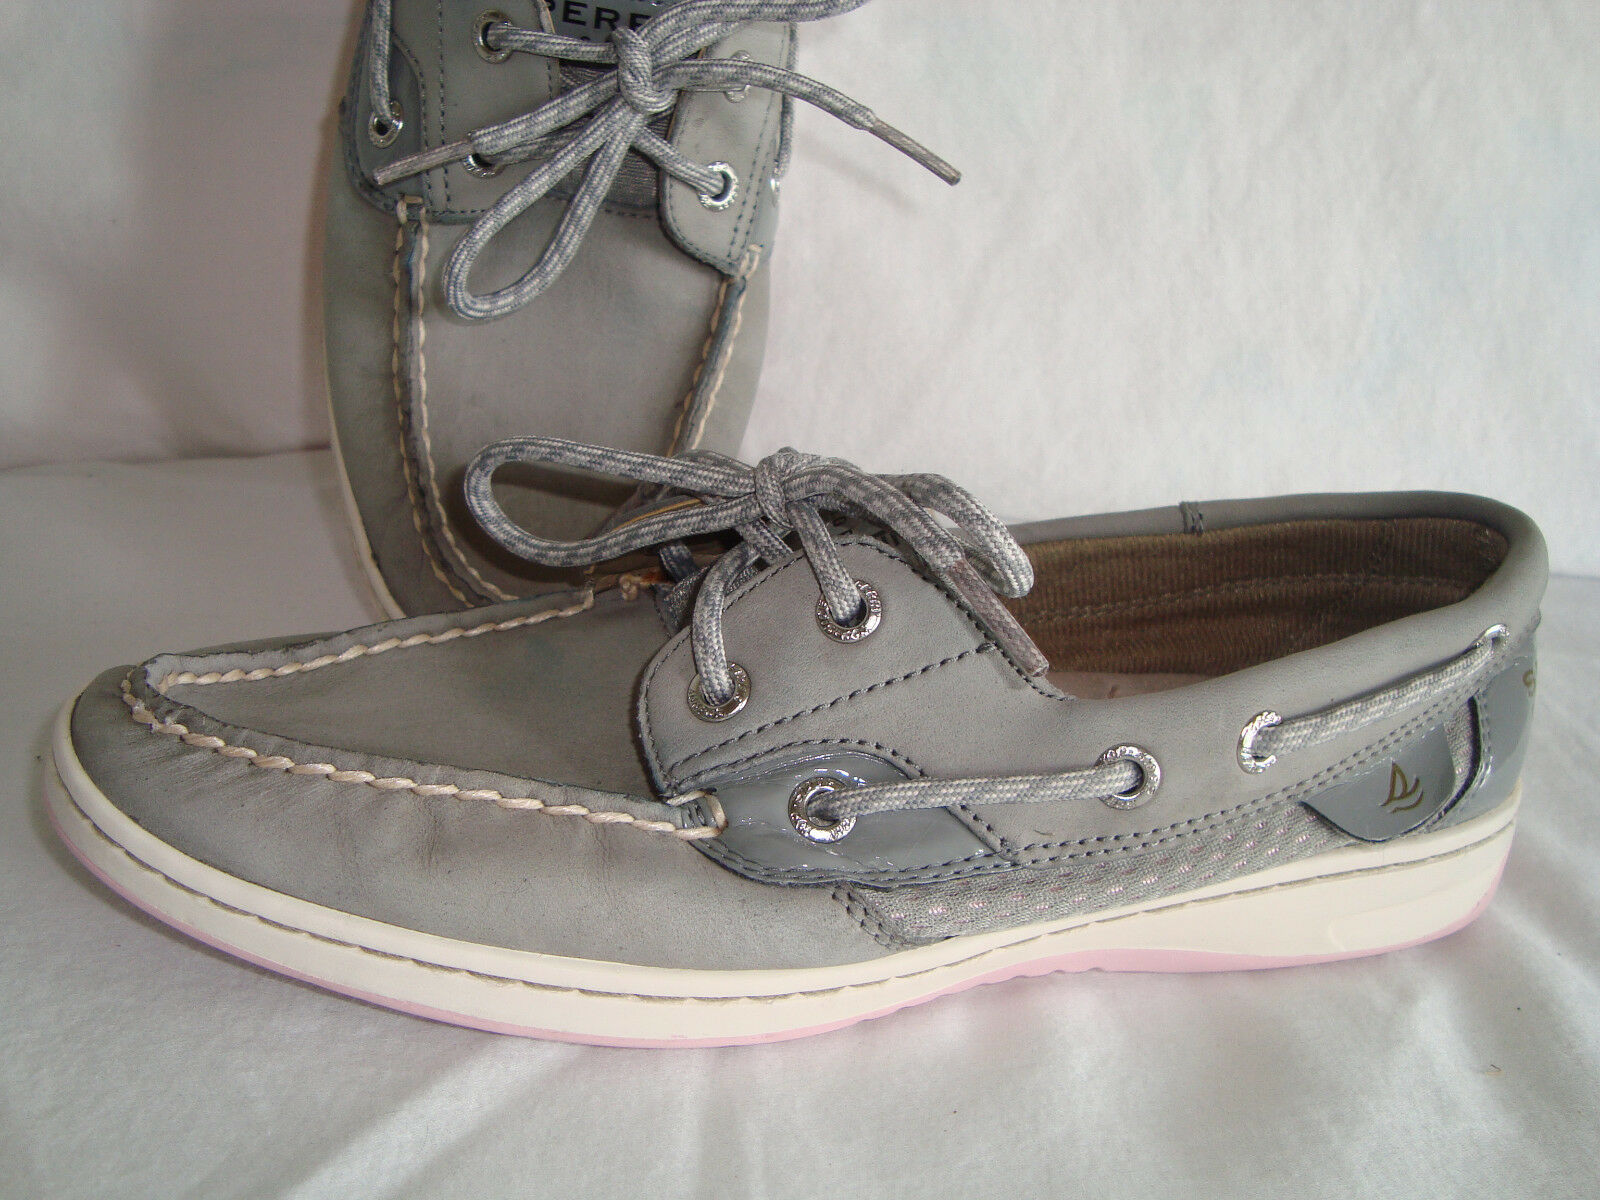 Sperry Top Sider shoes Size 7.5